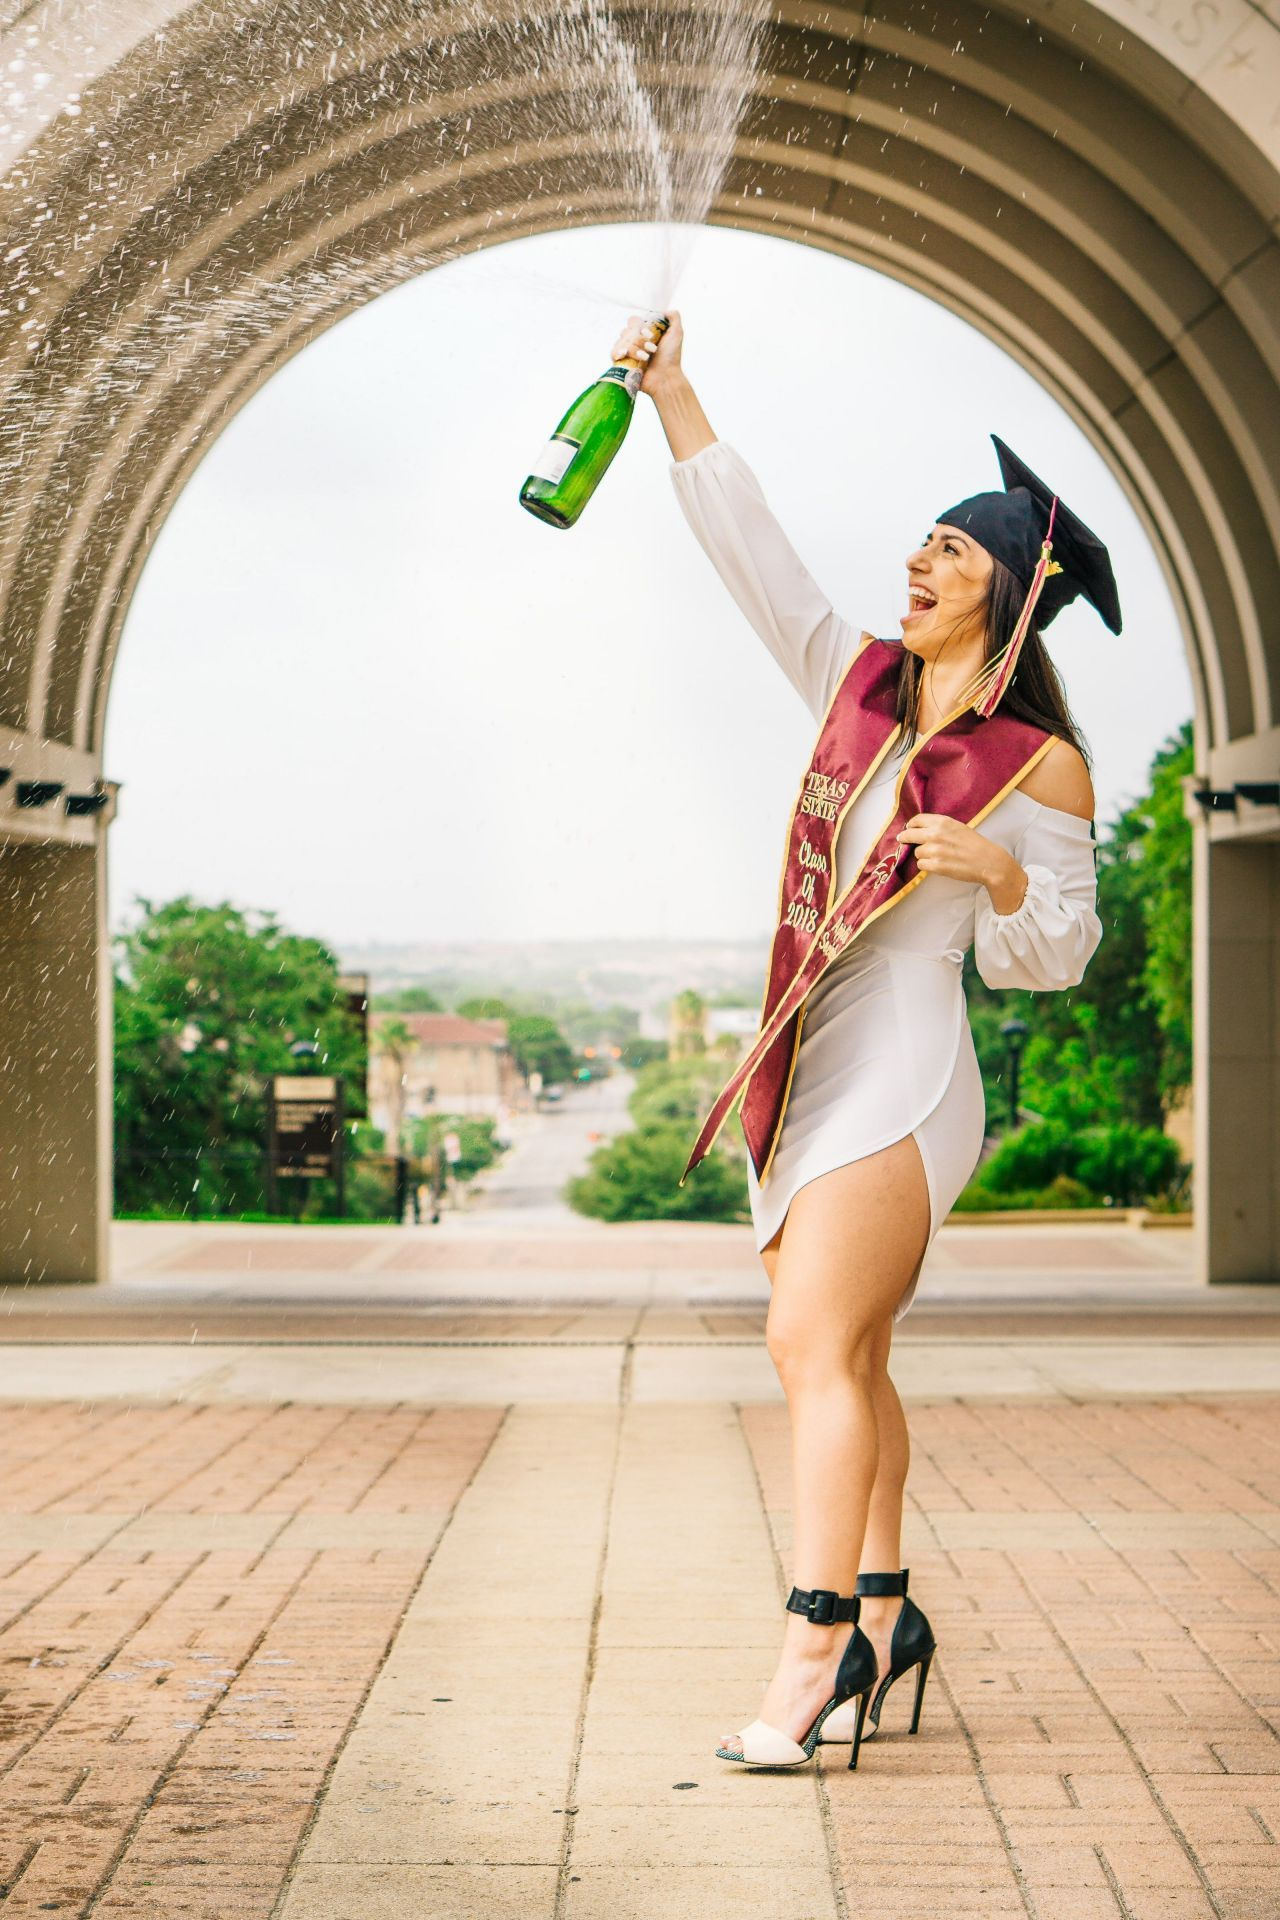 Graduation picture ideas for photography 24